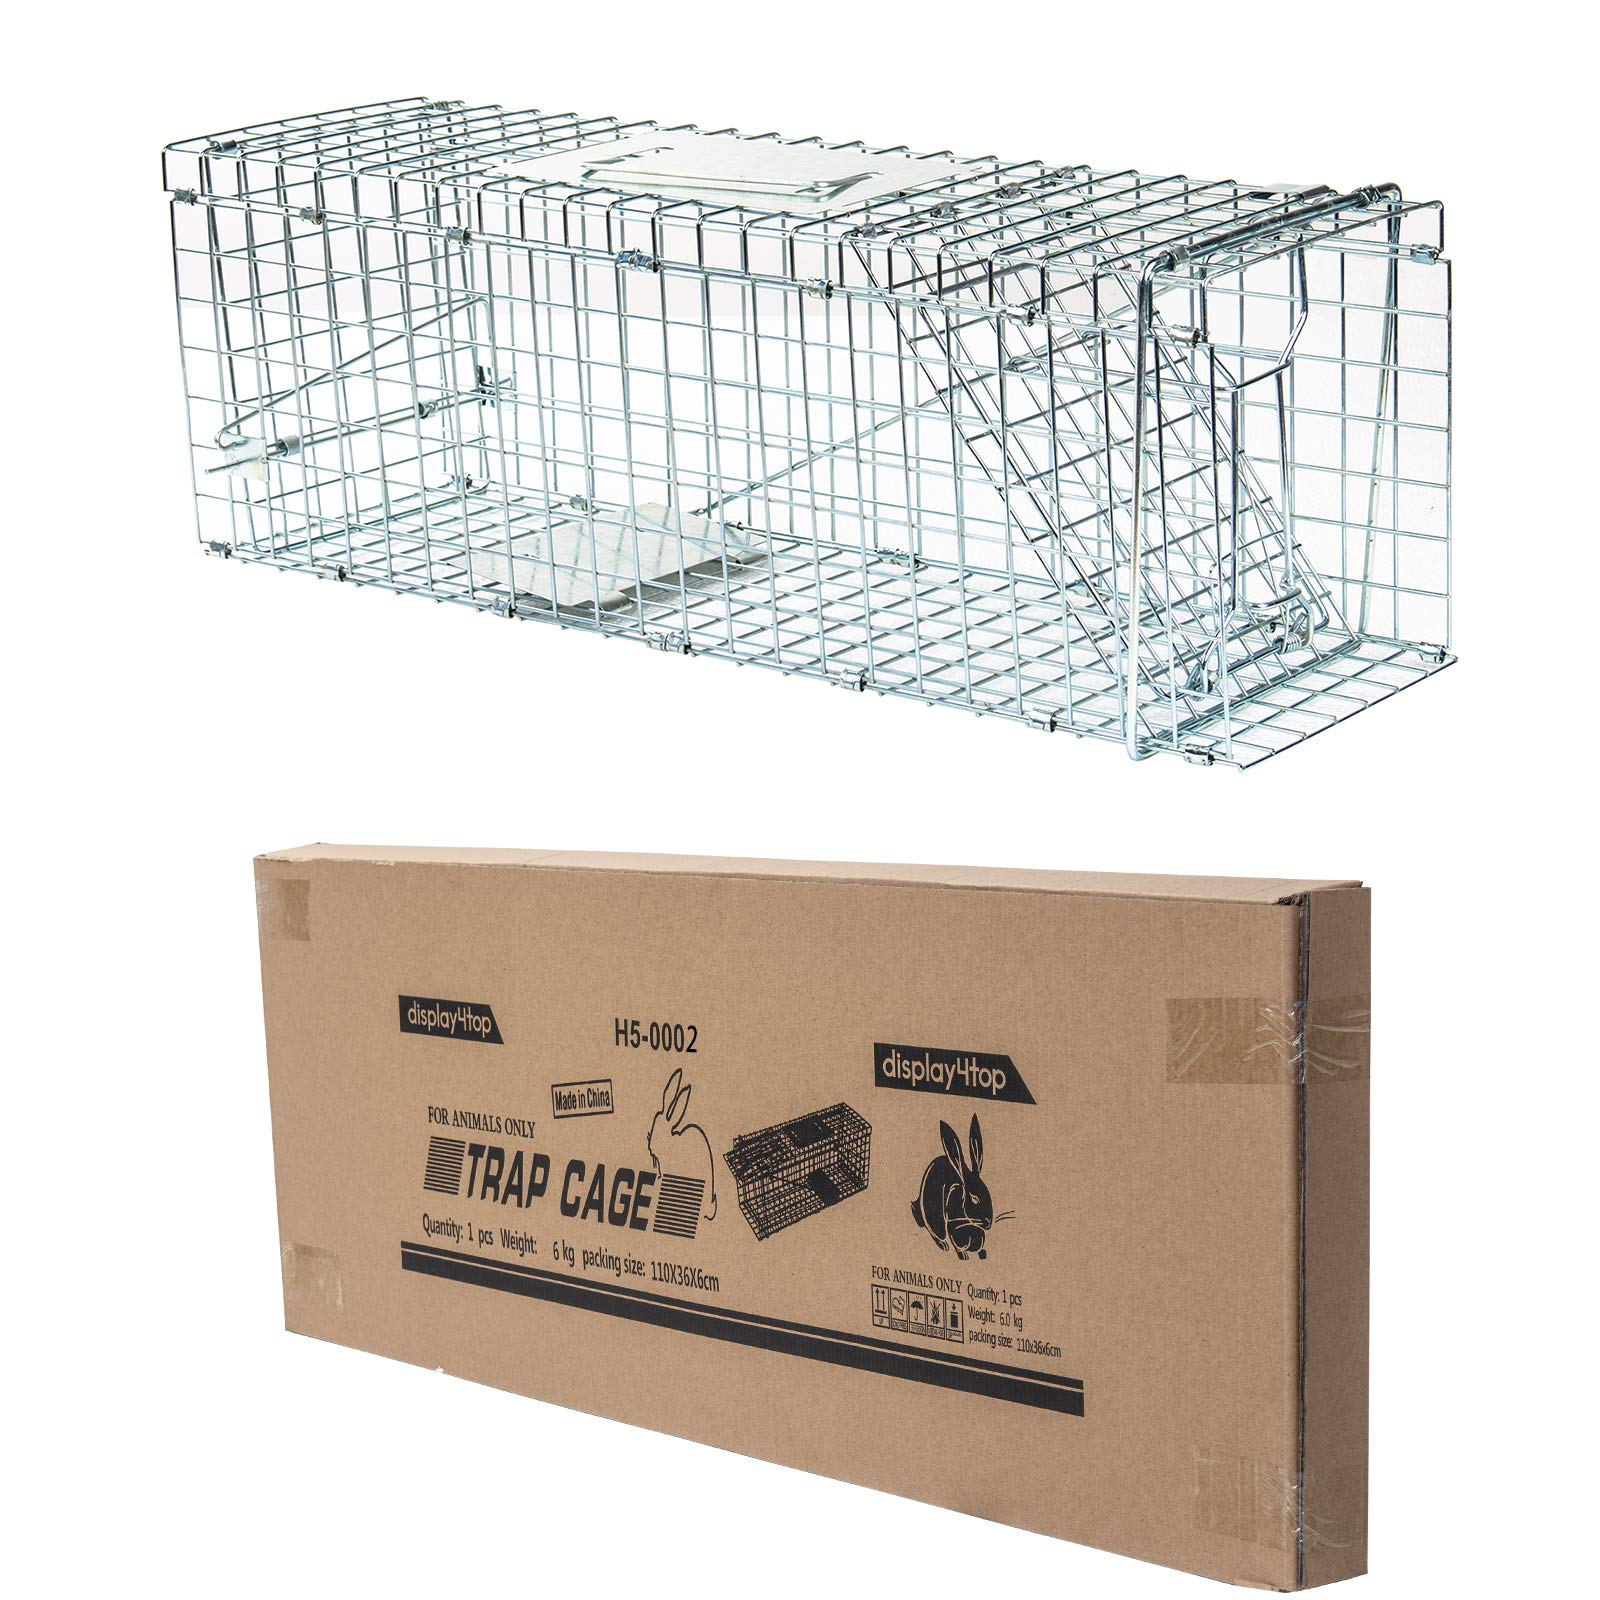 D4P Display4top Humane Live Animal Trap Cage,Catch and Rabbit,Squirrel, Raccoon (79 x 28 x 33cm)